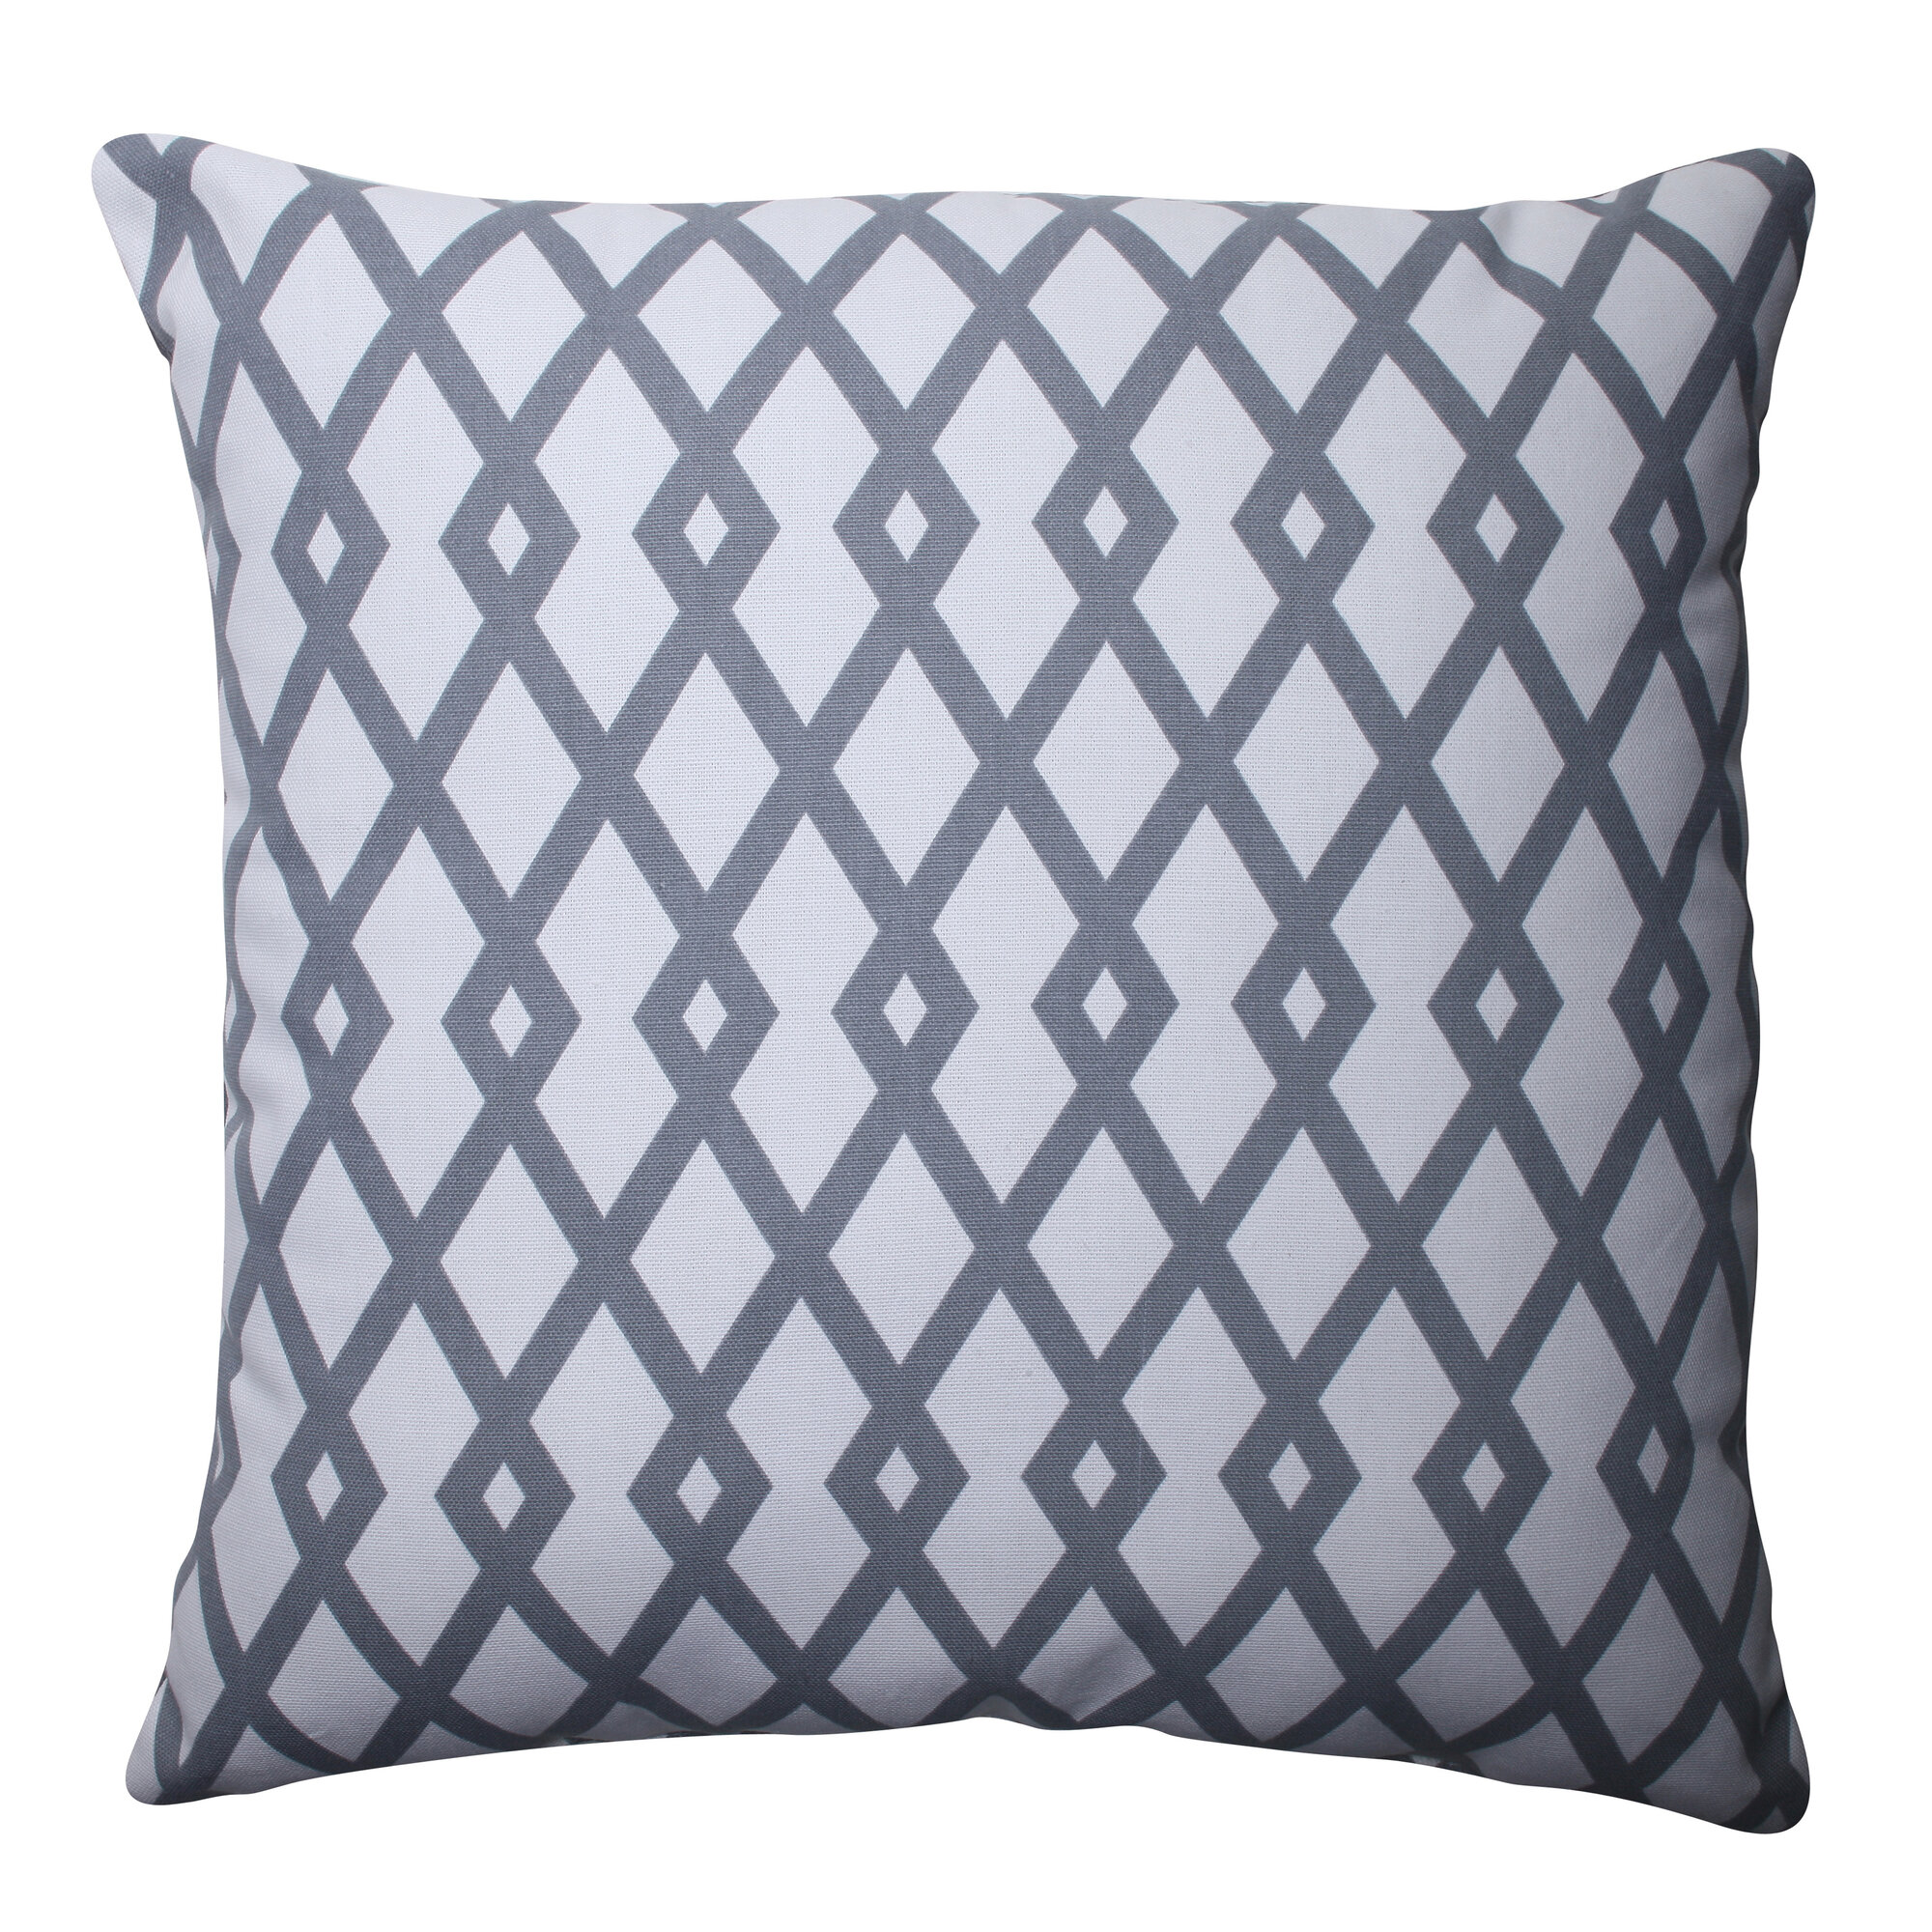 Graphic Throw Pillow